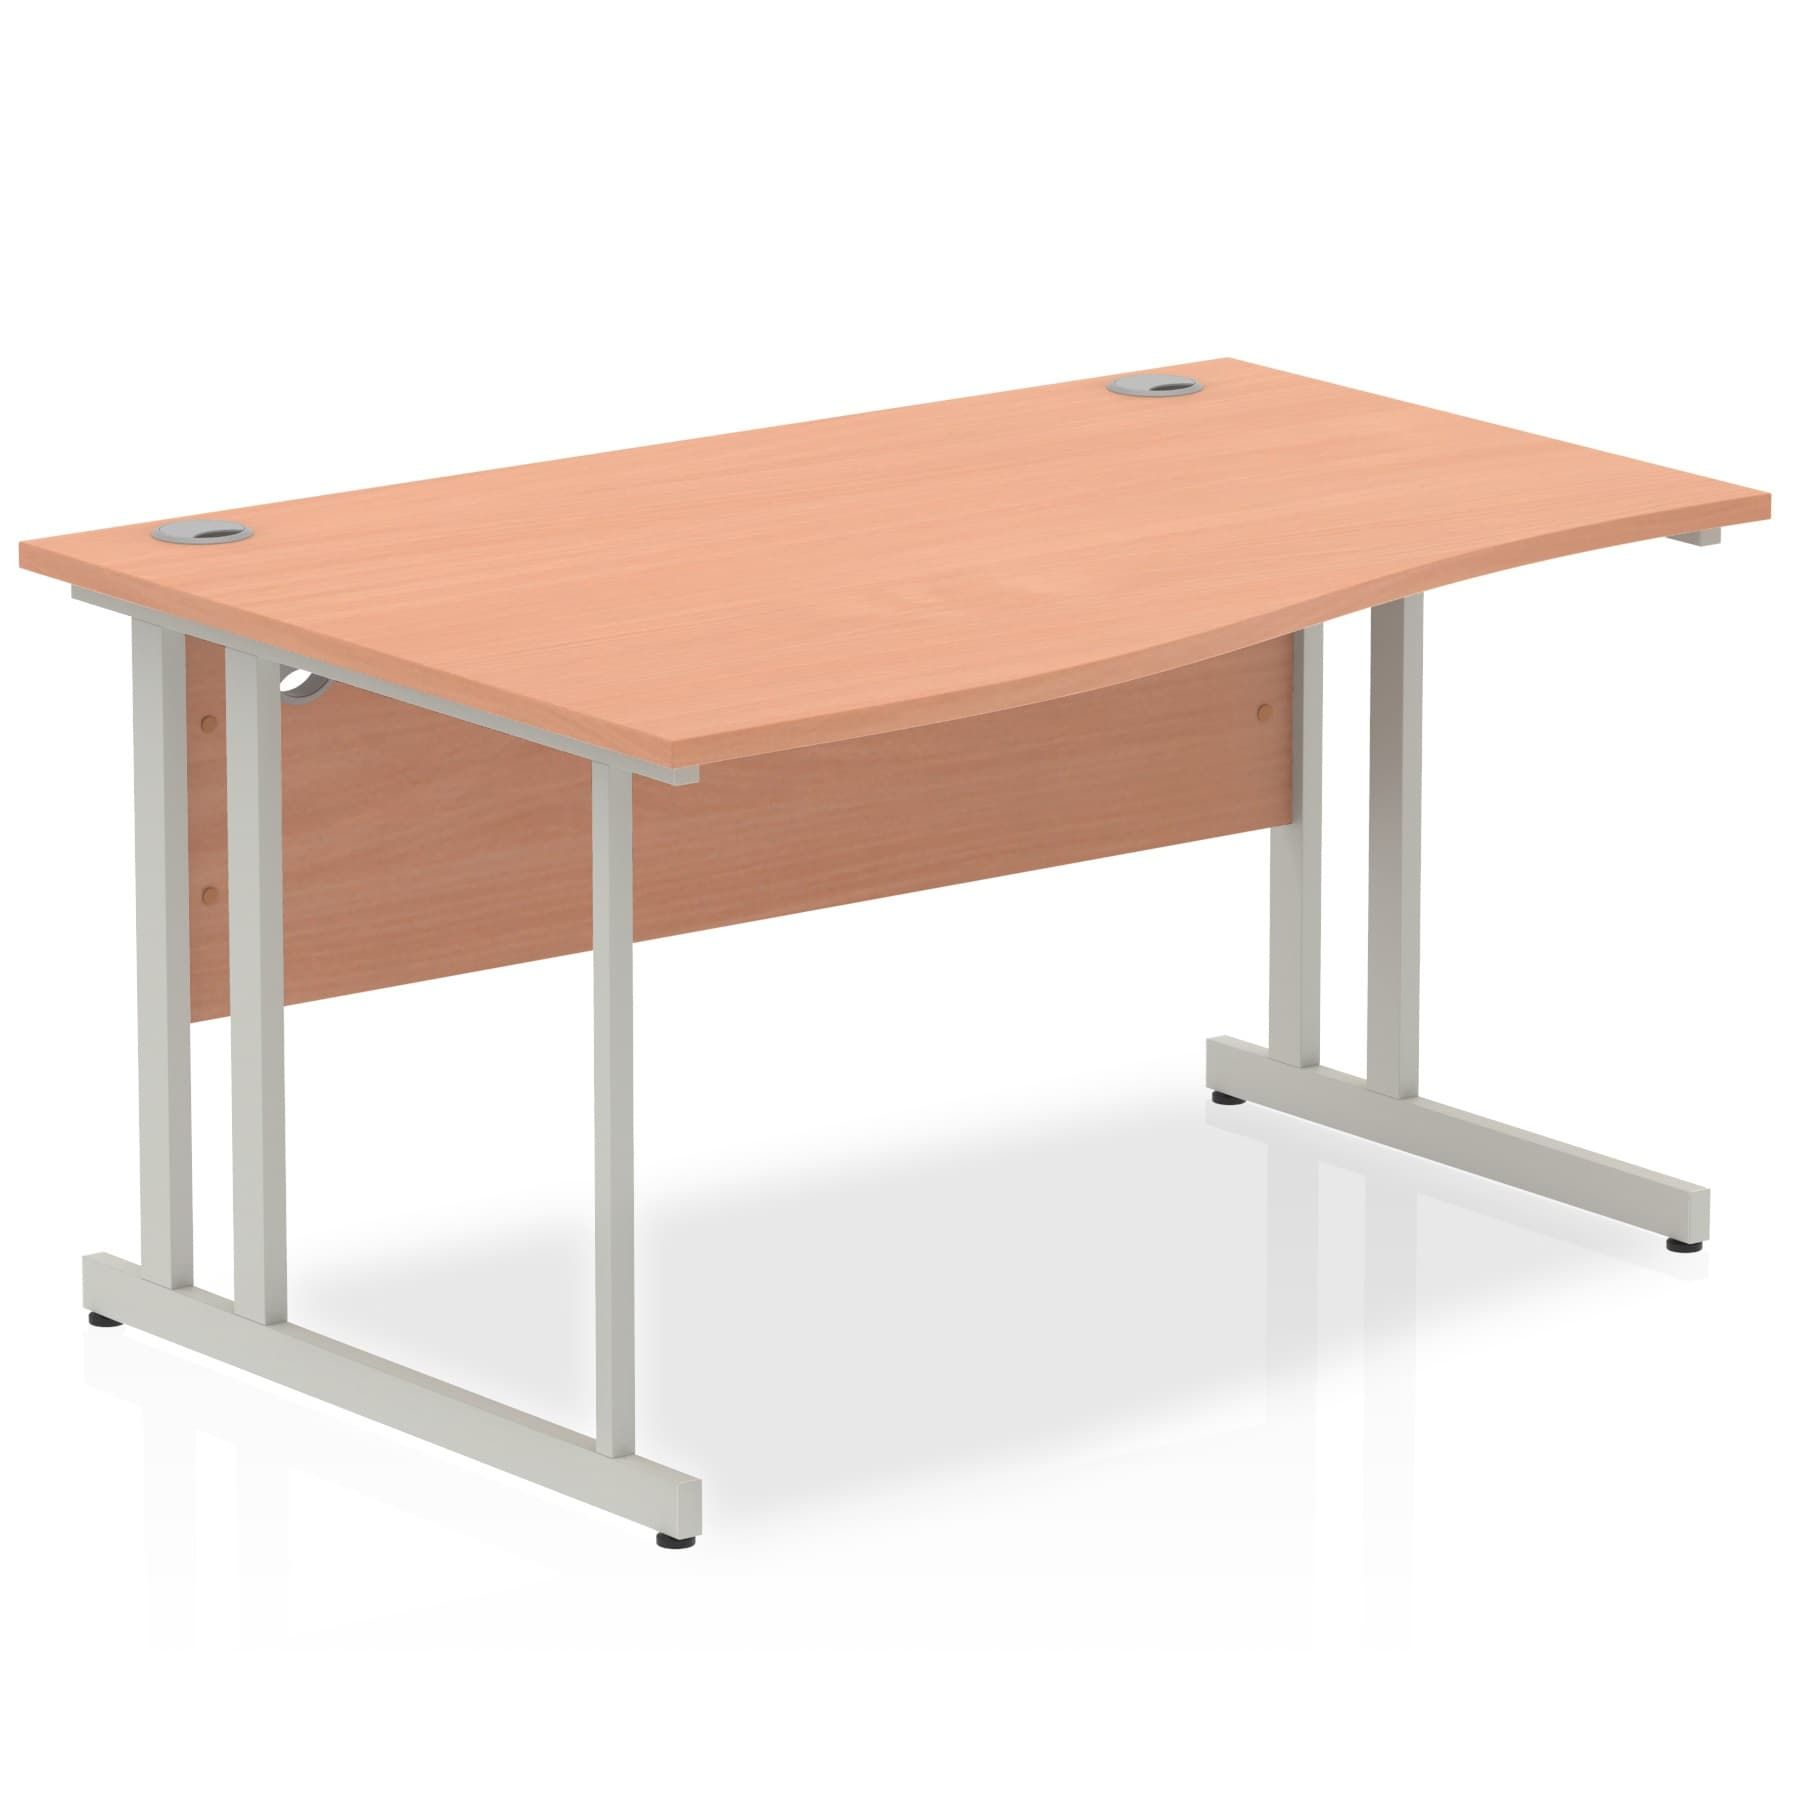 Impulse 1400 Left Hand Wave Desk with Cantilever Leg